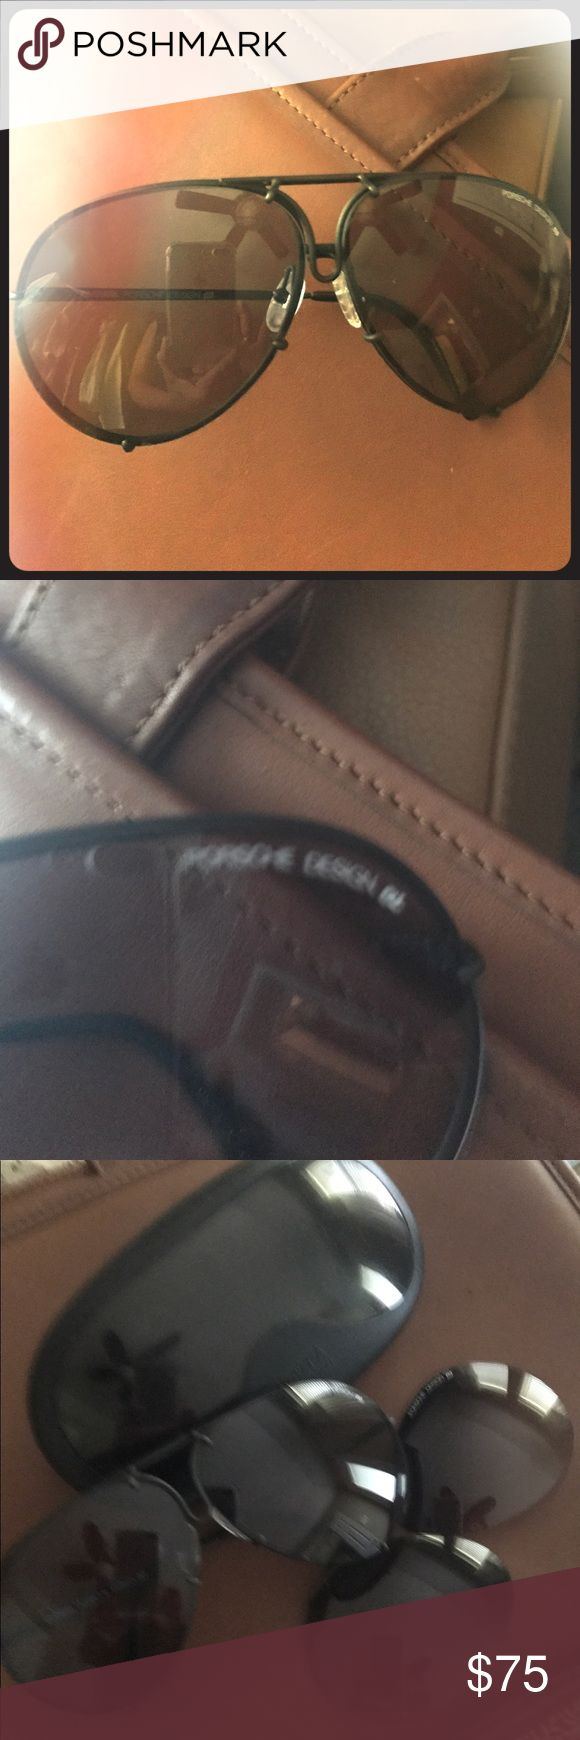 Porsche Sunglasses Great condition Includes extra lenses (never used) and case which has scratches PORSCHE Accessories Glasses